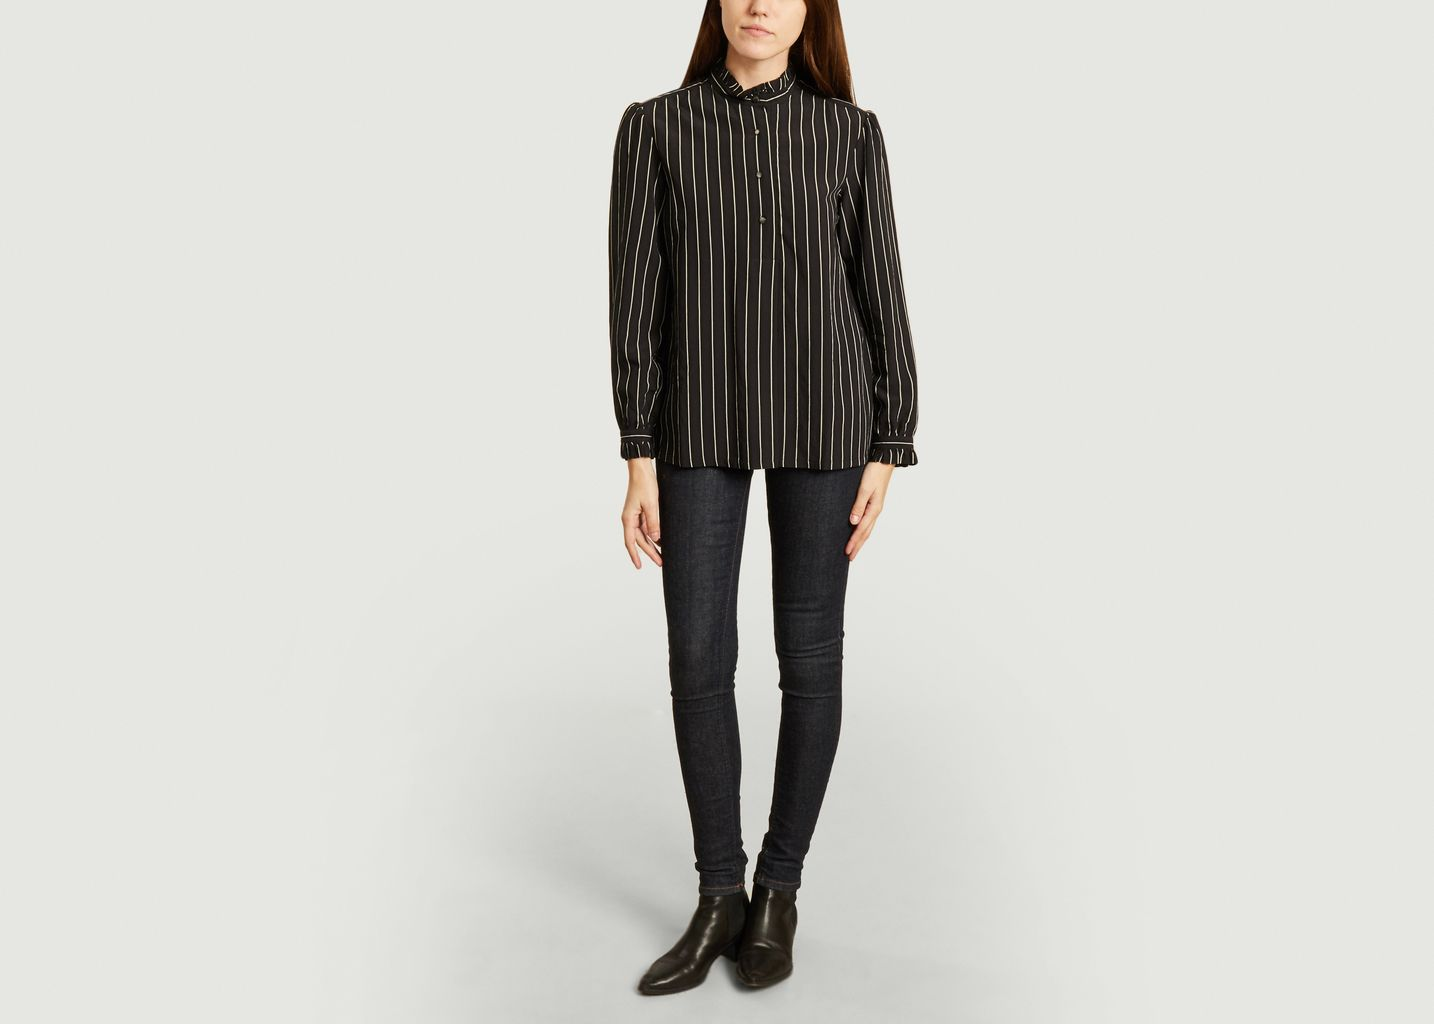 Blouse St-Germain - A.P.C.